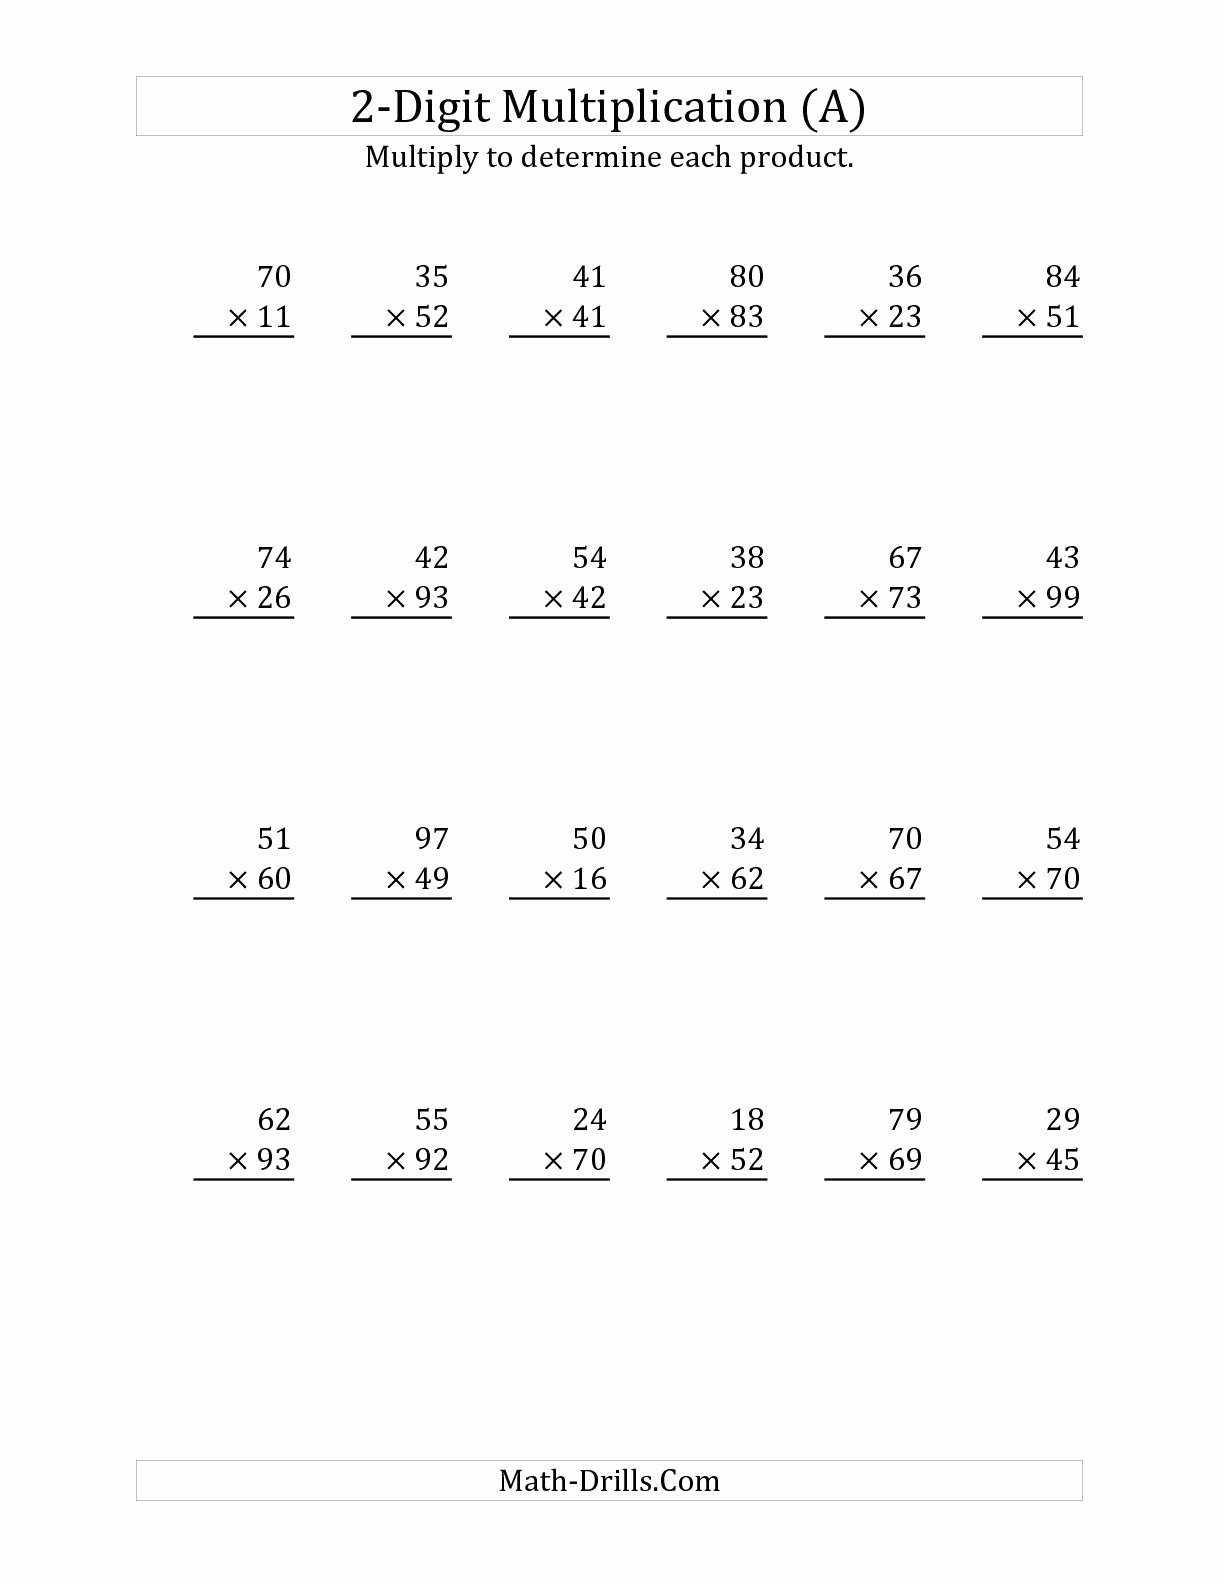 Free 2 Digit Multiplication Worksheets Unique Multiplying A 2 Digit Number by A 2 Digit Number A Long